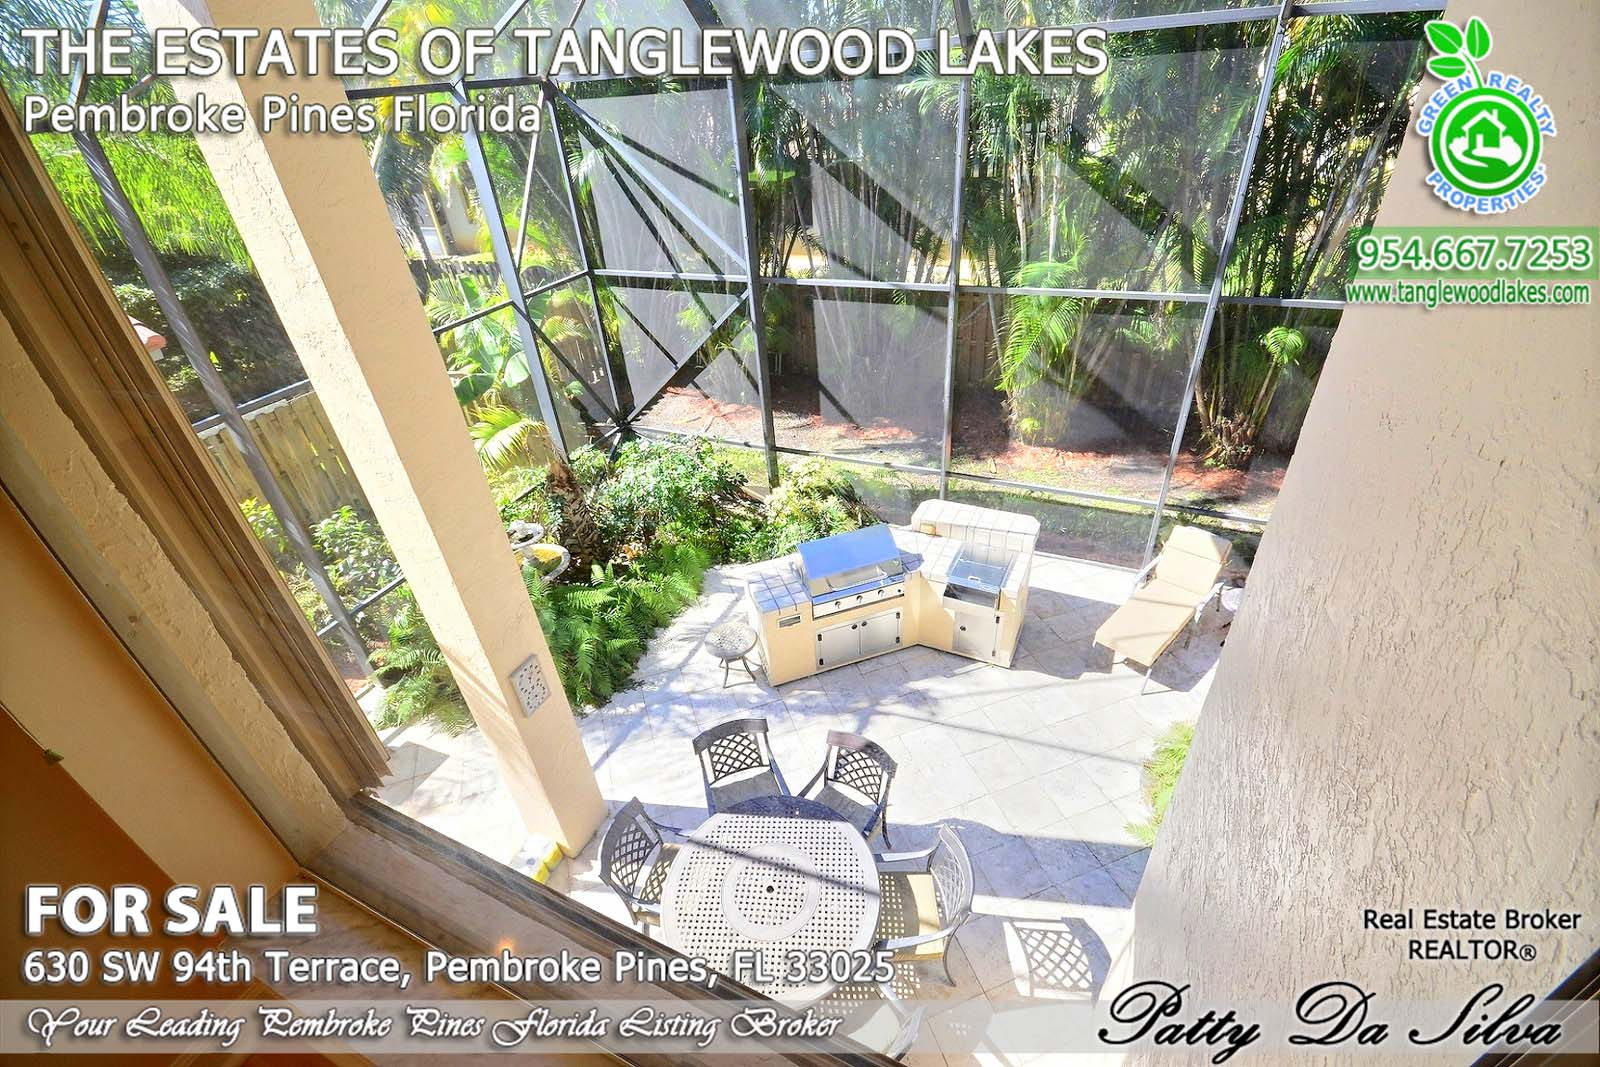 pembroke pines homes in the estates of tanglewood lakes